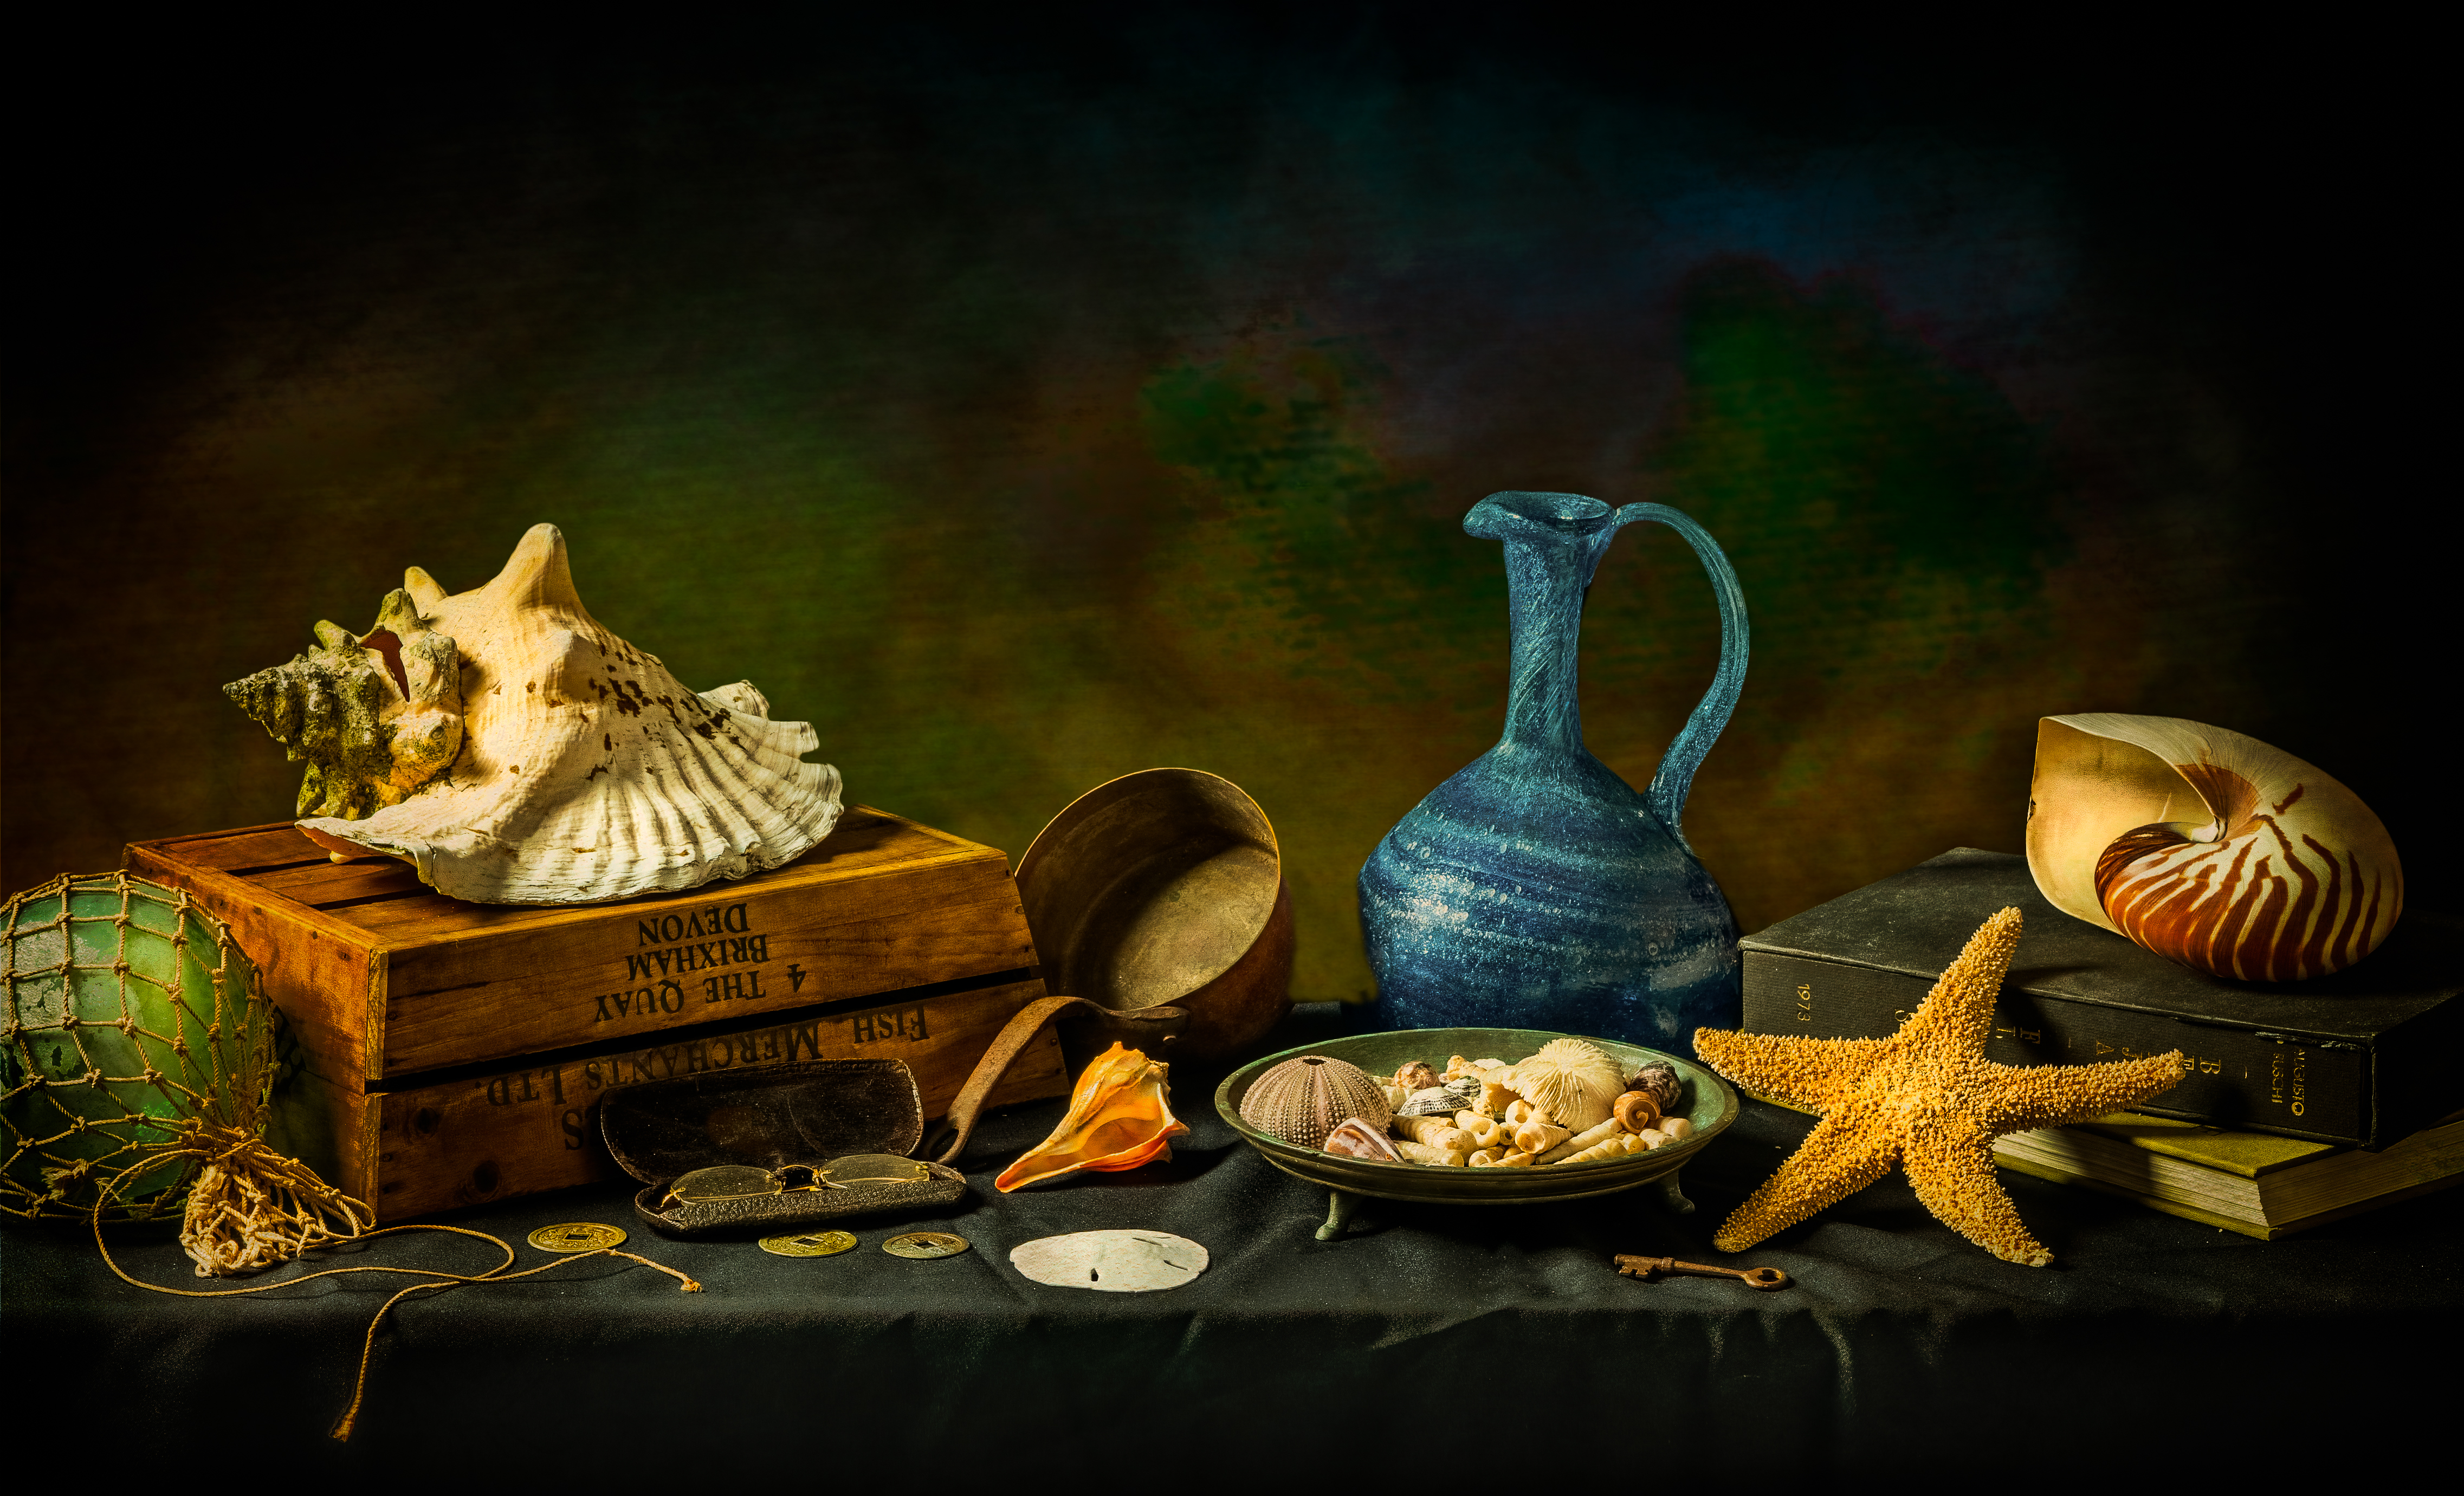 still life photograph with a variety of shells with eyeglasses, books, vase , etc